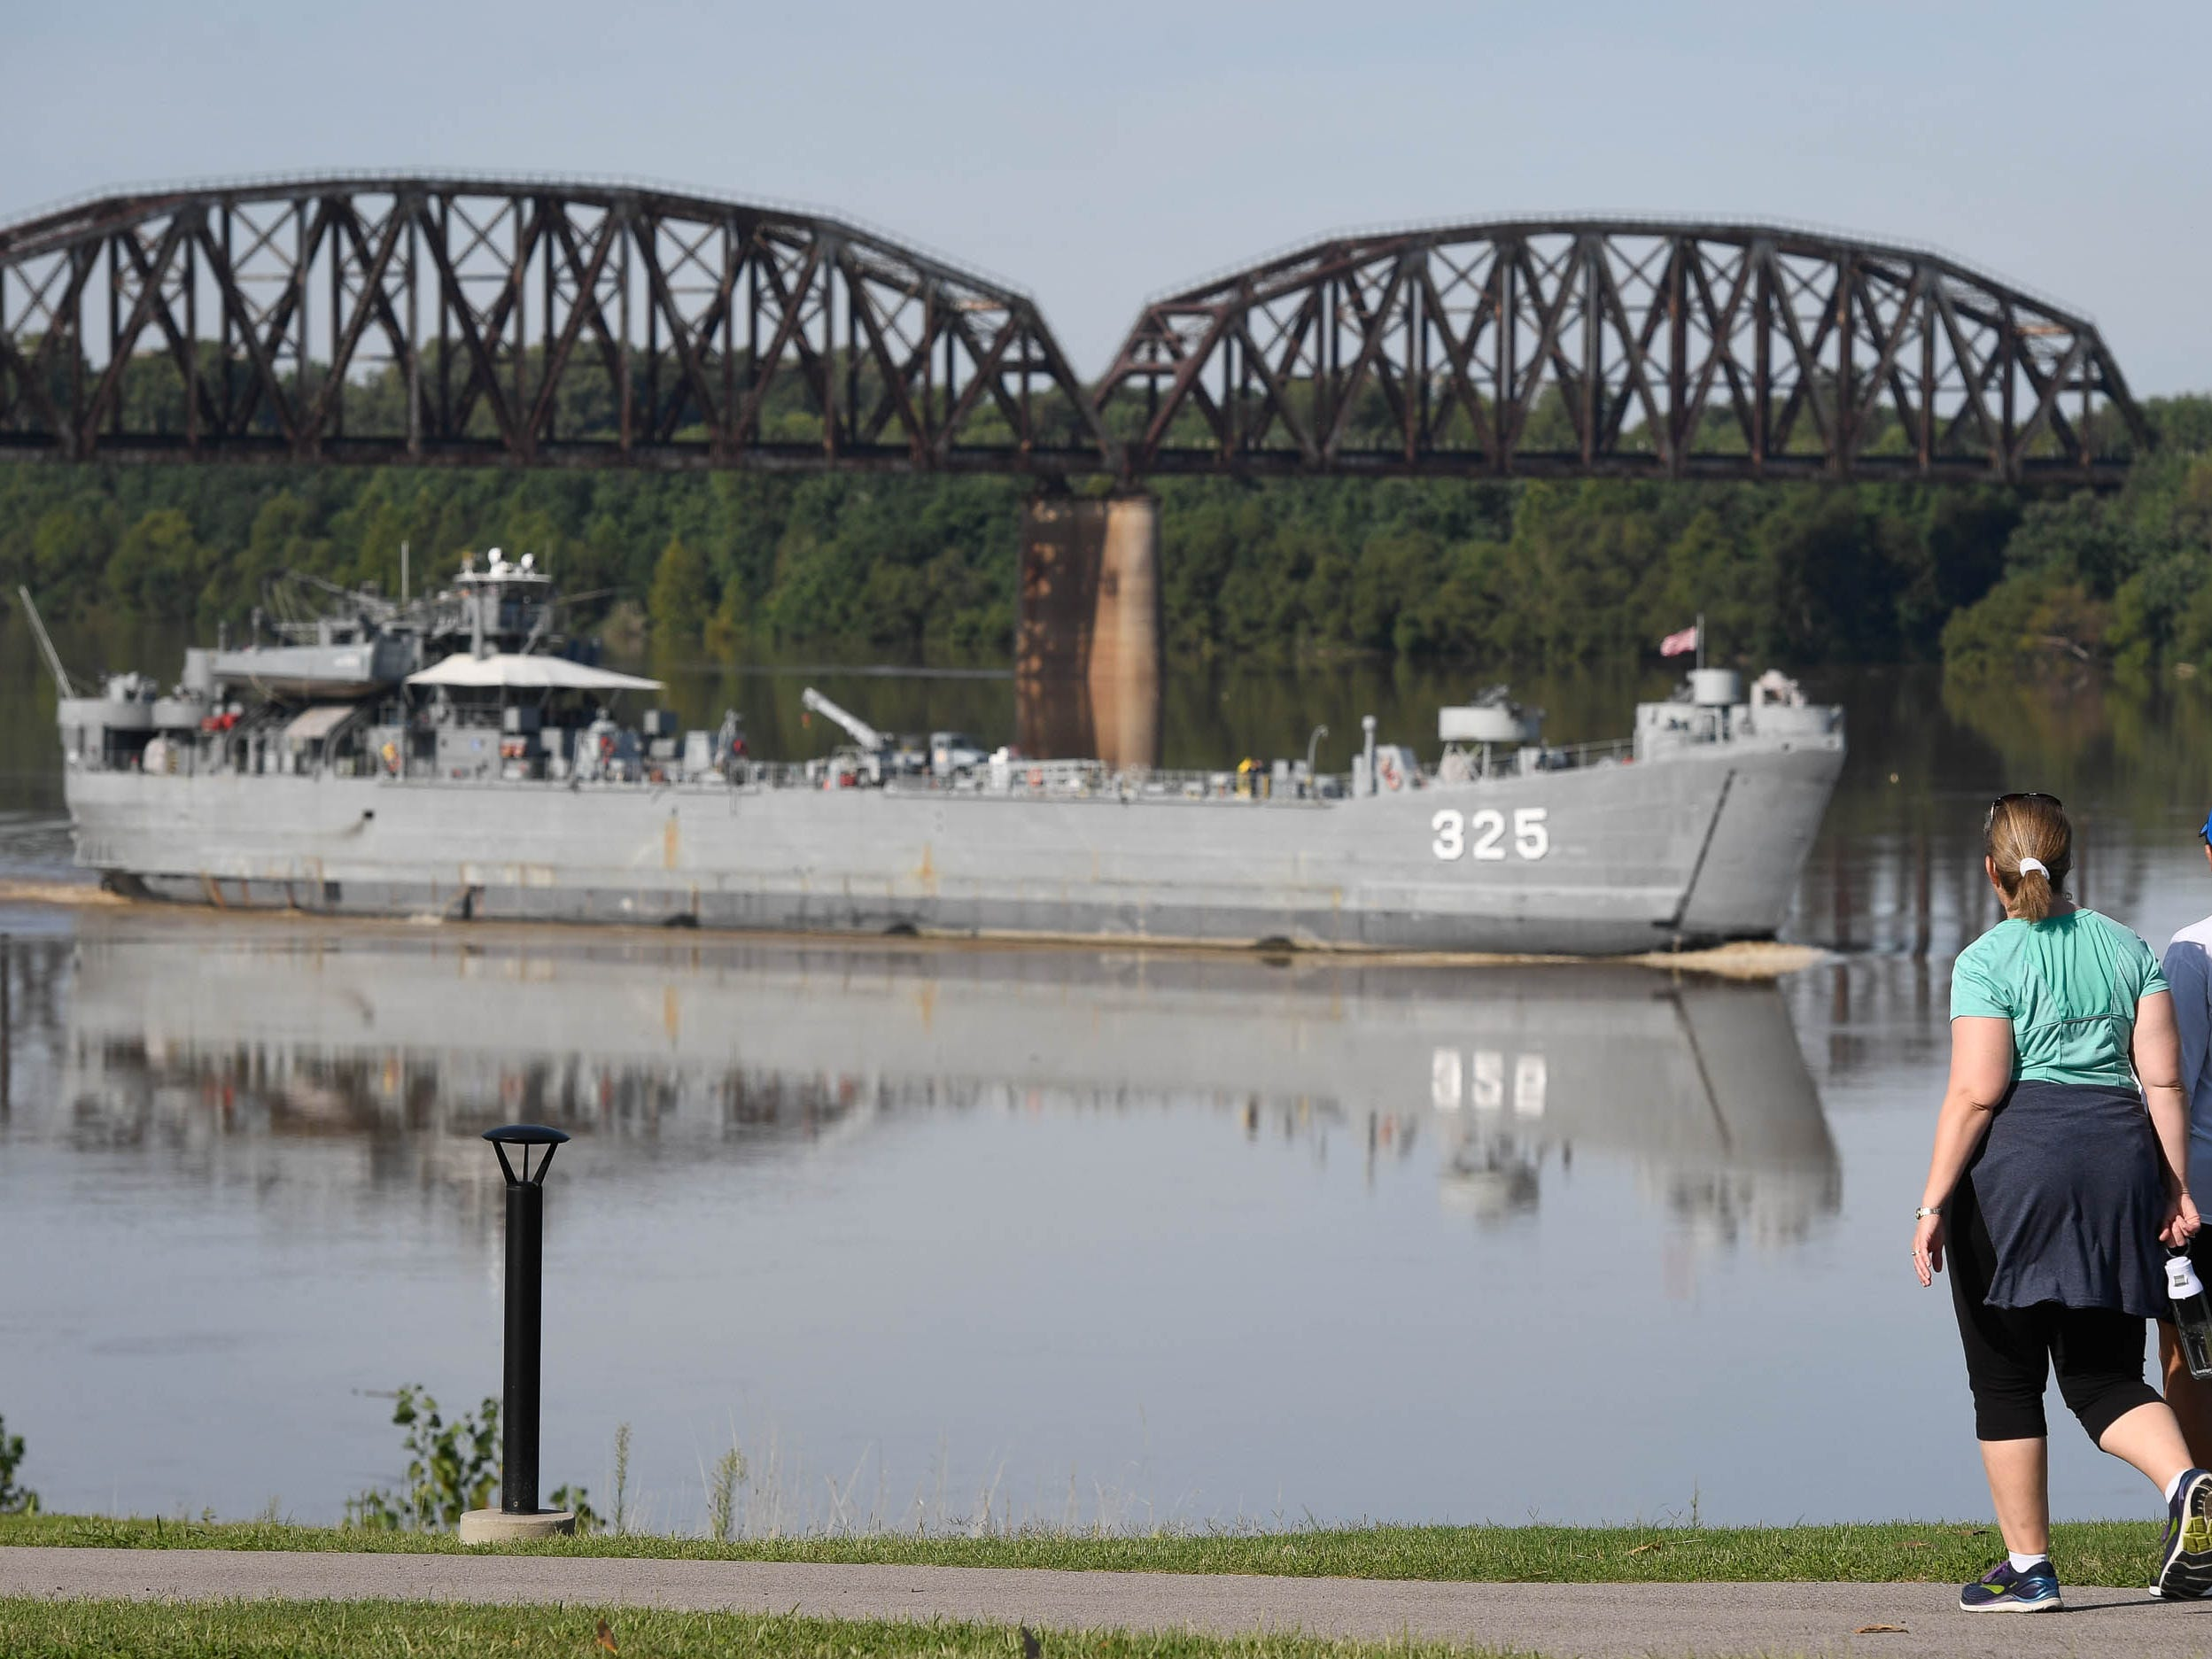 Out for a morning walk, Tanna Williams, left, and Julie Beickman got a visual treat as the LST 325 sails up-stream past the Henderson riverfront on it's way back to Evansville Tuesday, September 11, 2018.